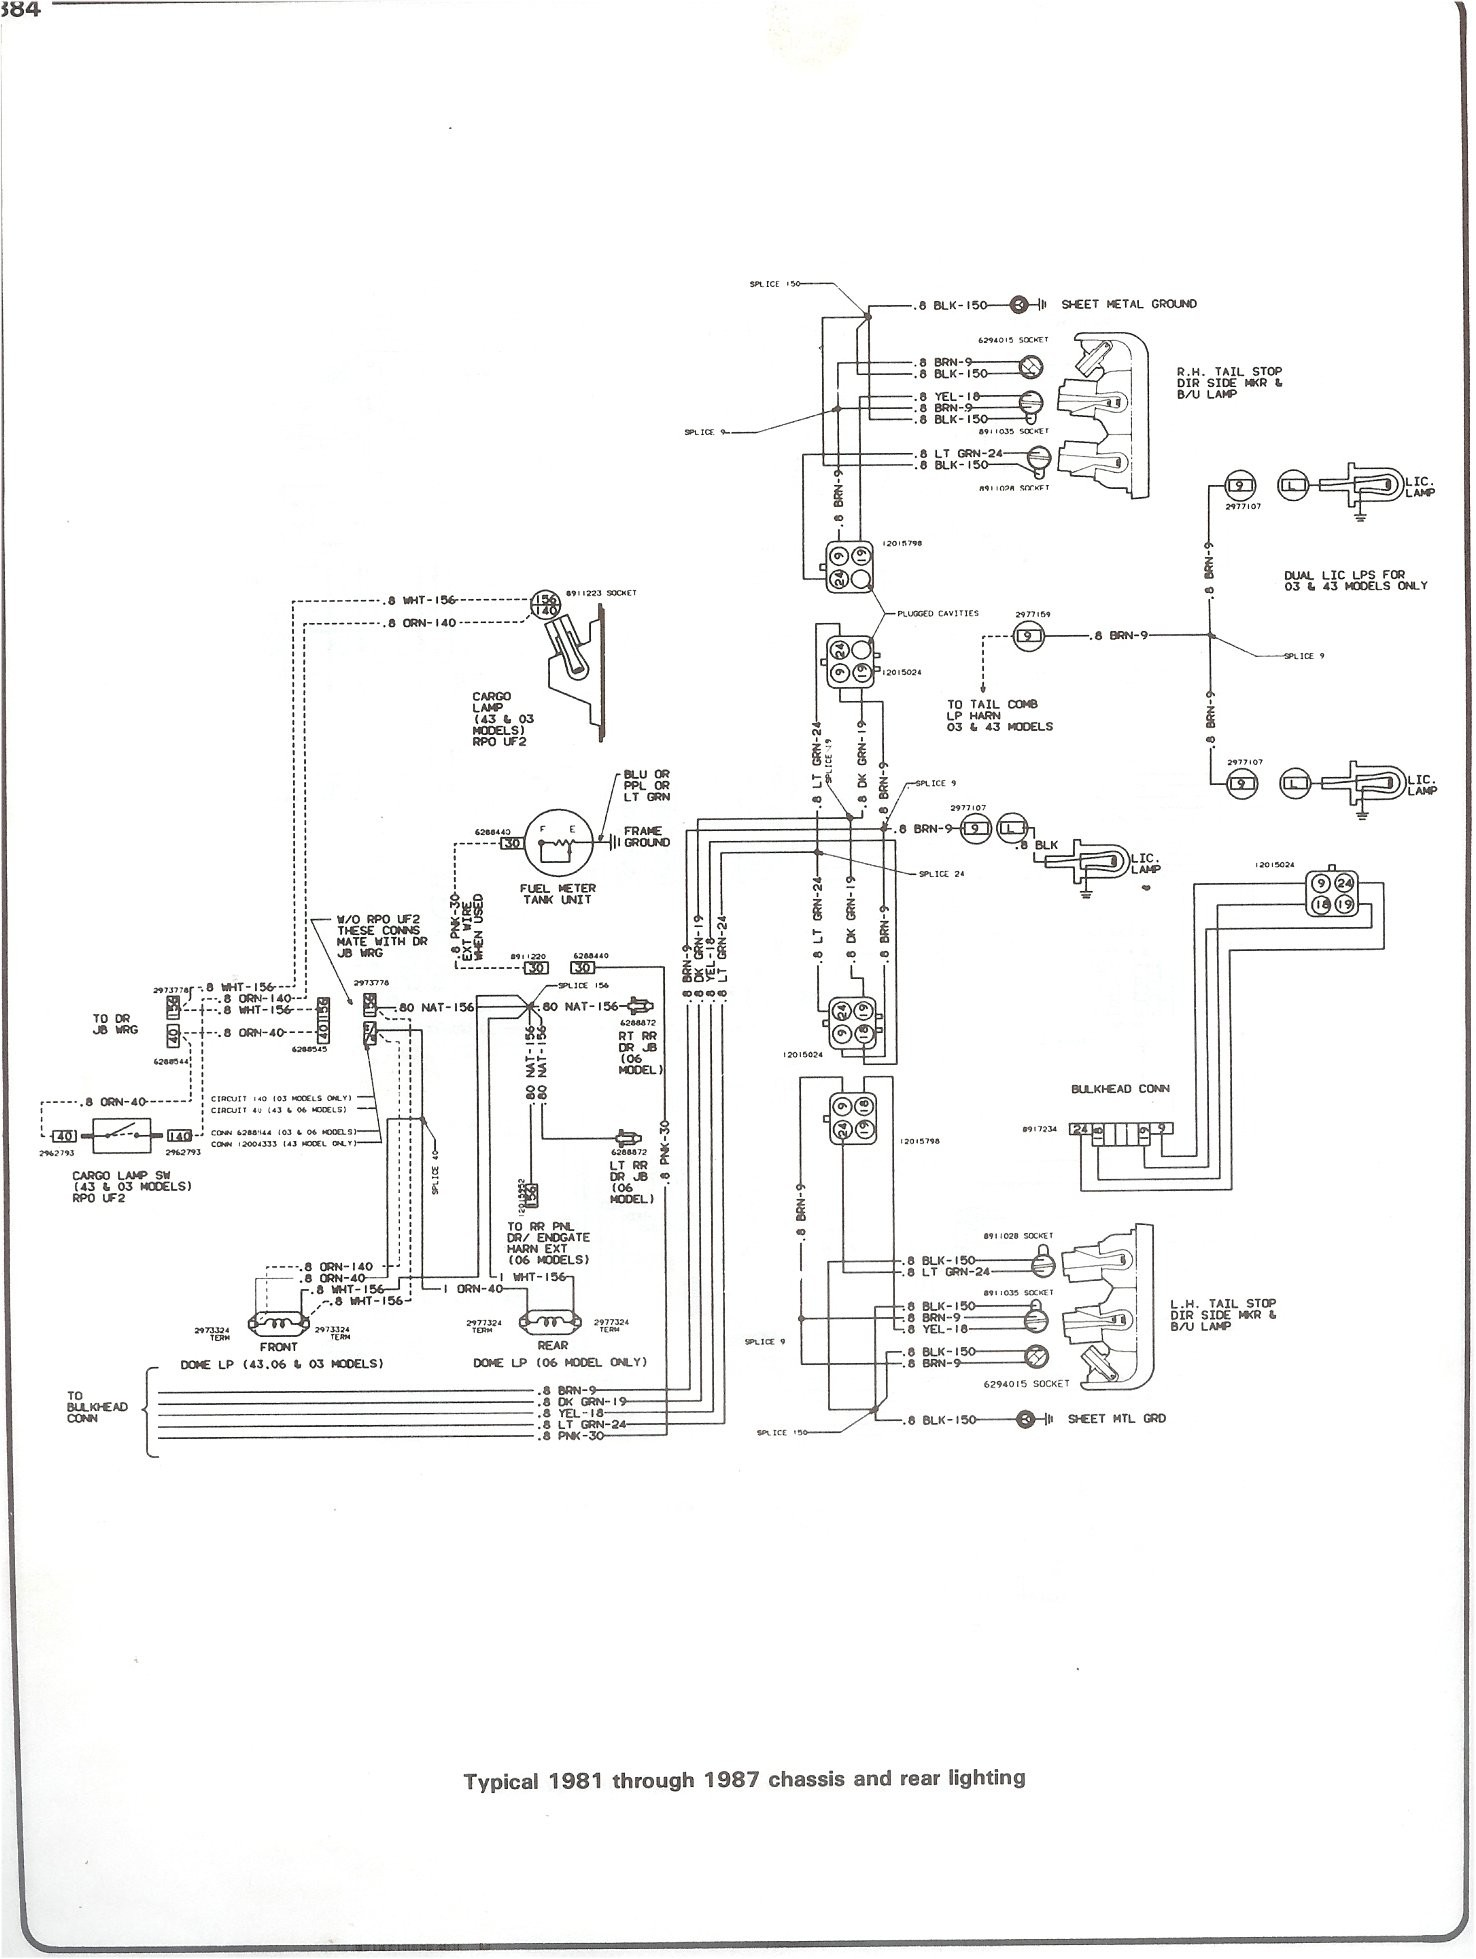 4g64 fuel injector wiring schematic